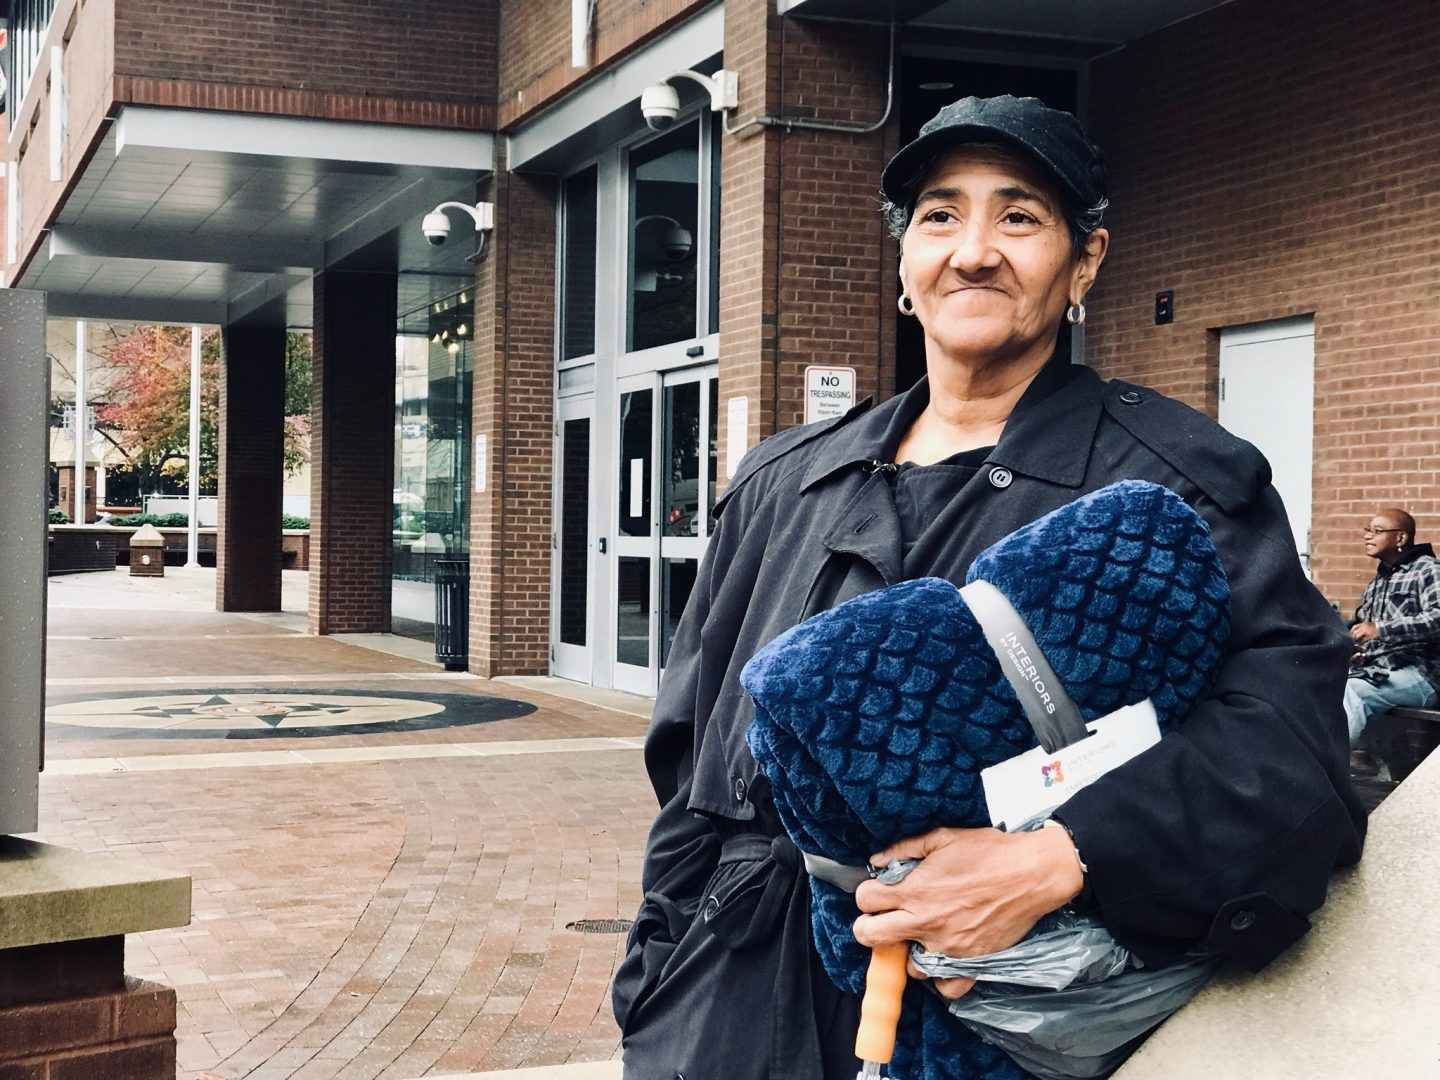 """FILE PHOTO: Hilda Sierra-Marrero is living homeless in Lancaster.  She has been diagnosed with multiple mental health disorders and finds it easier to live in her own """"bubble."""""""